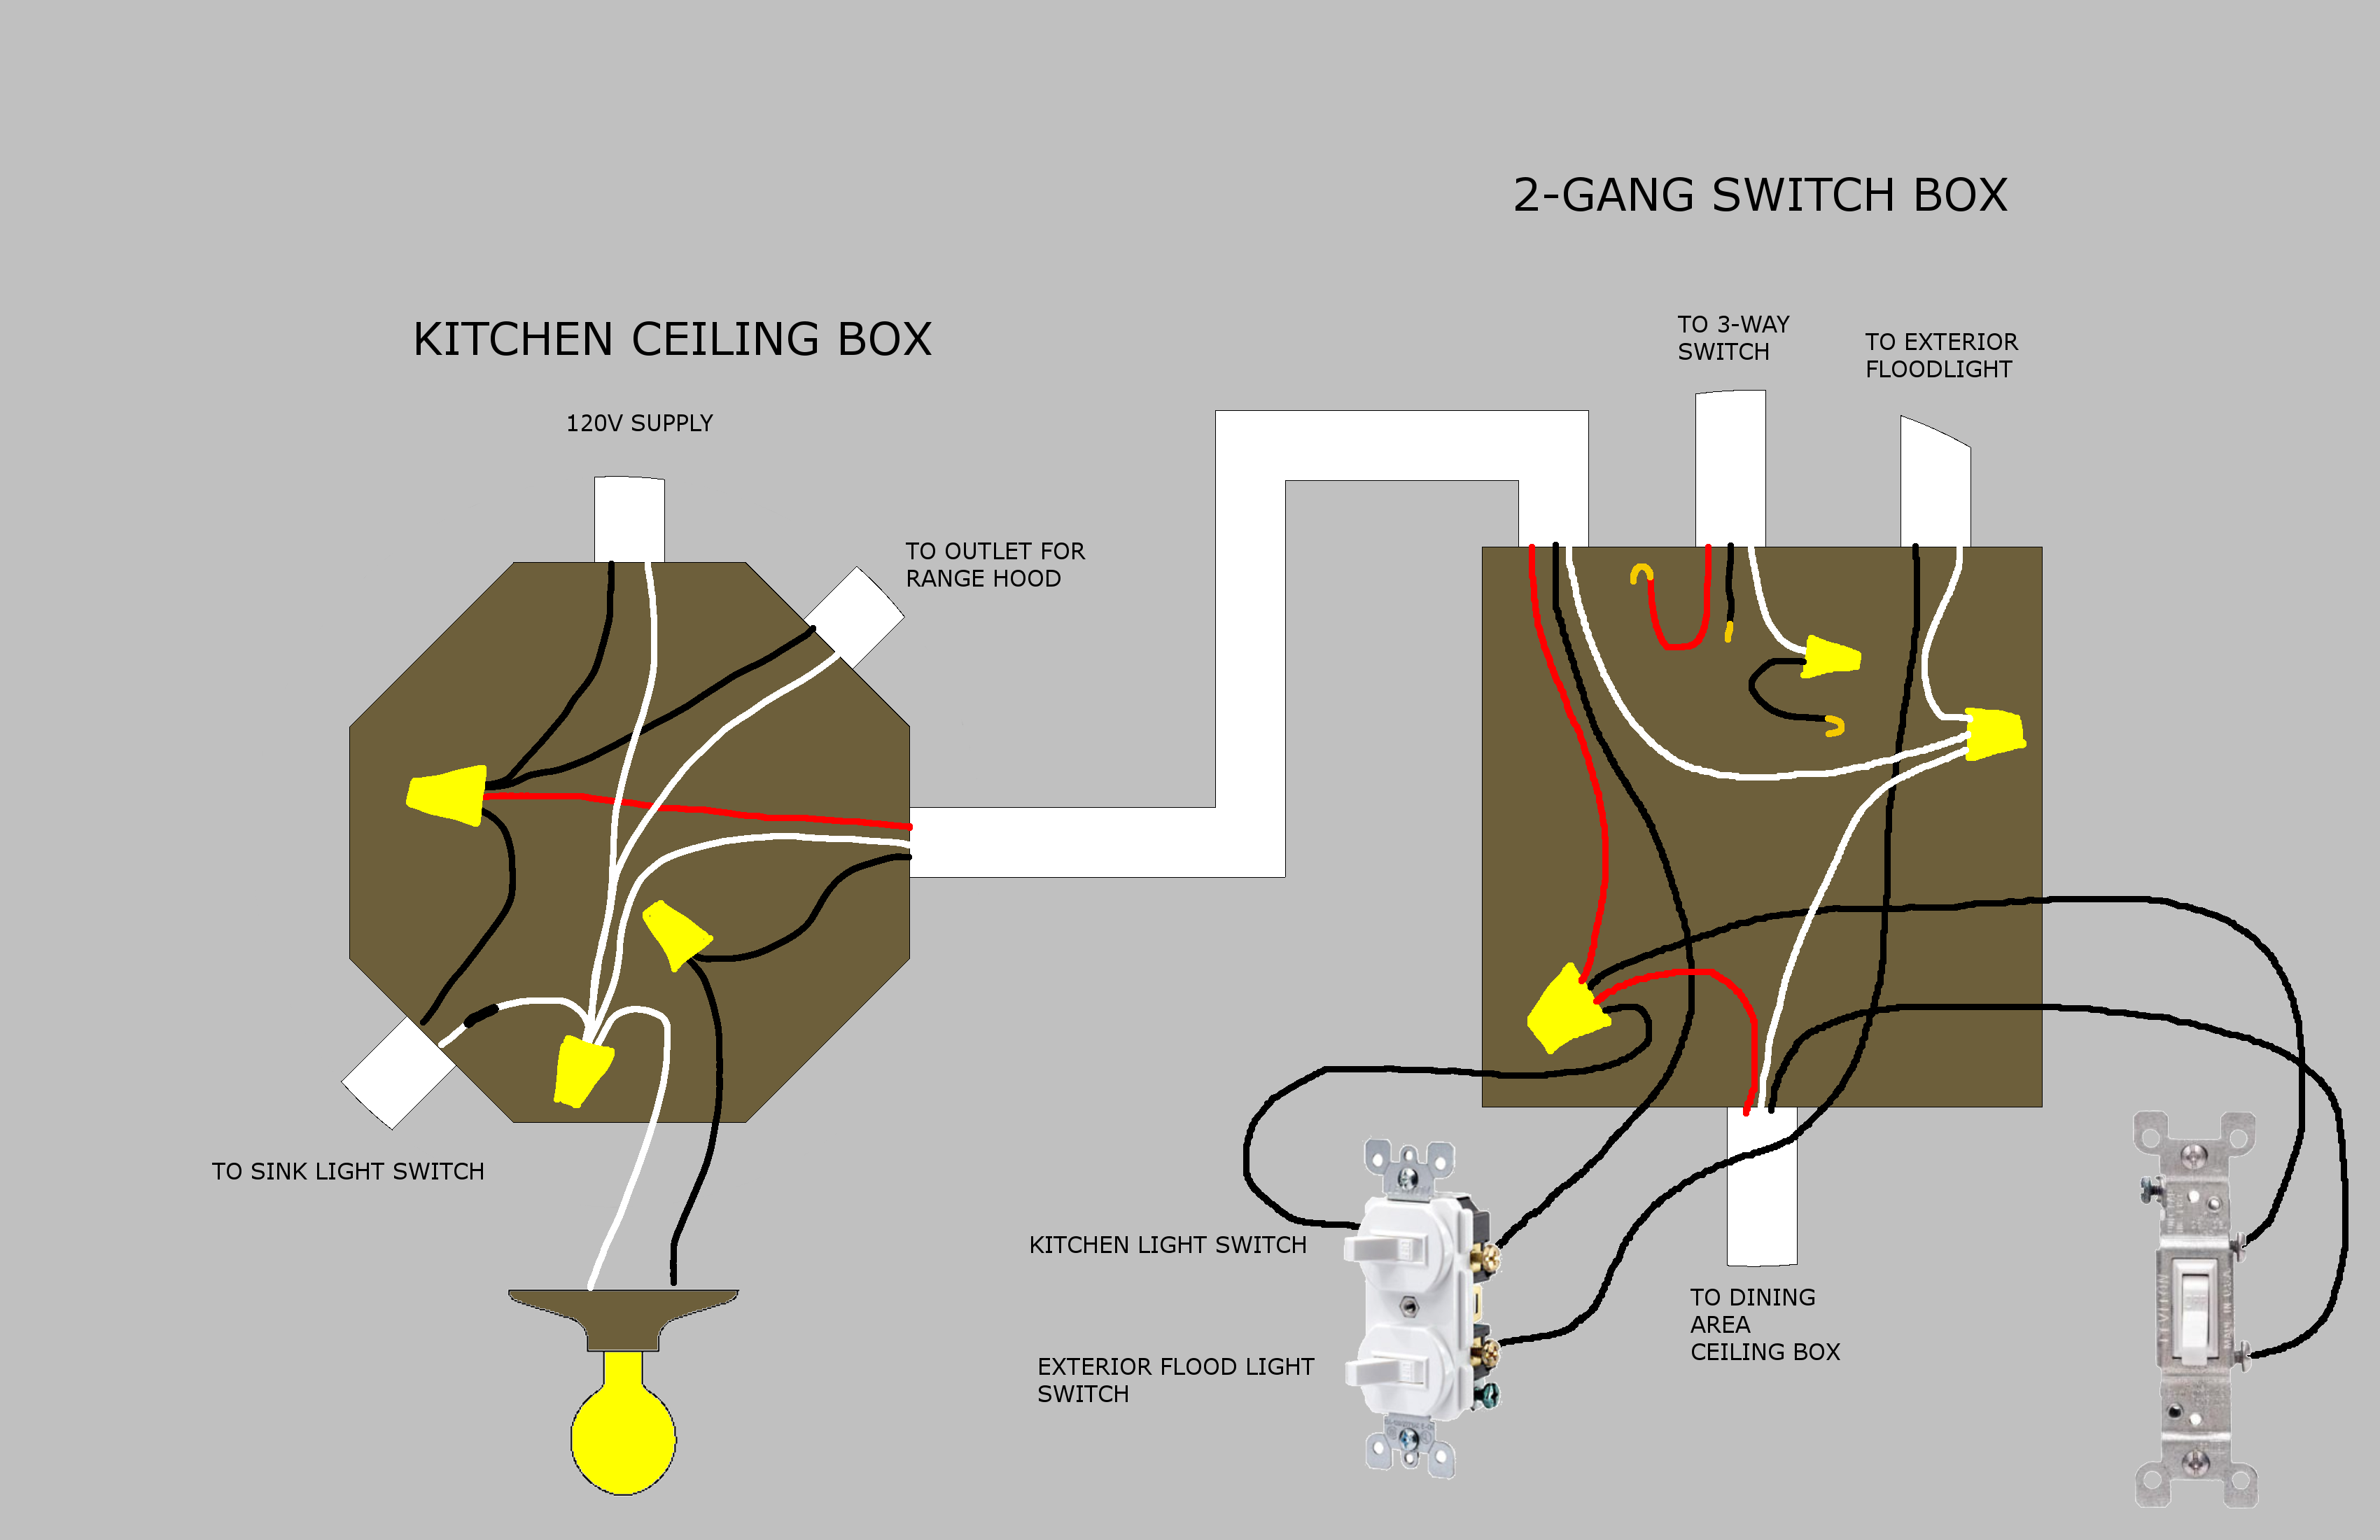 New Wiring Diagram For Multiple Lights On A Three Way Switch Diagrams Digramssample Diagramimages C Light Switch Wiring Three Way Switch Ceiling Rose Wiring